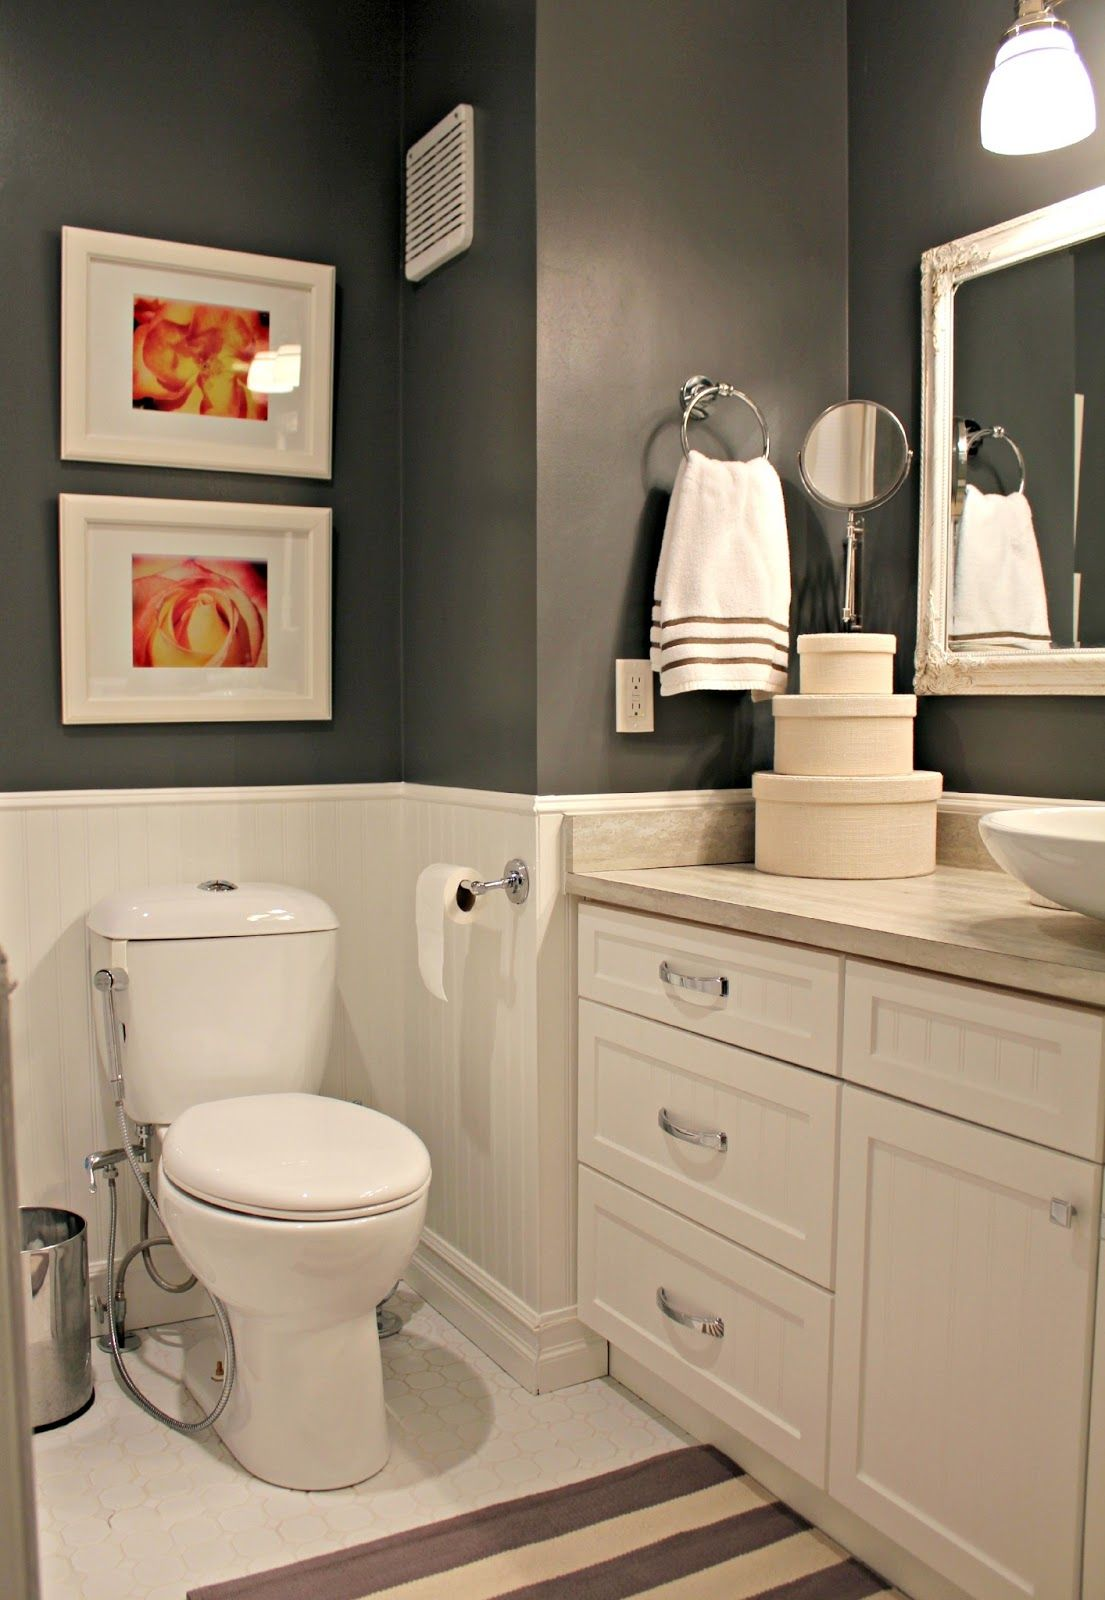 Budget Bathroom Reno   Two Loonies And A Penny (love The Paint Color  Contrasted With The Creamy White And The Orange Accents) ~Would Love To Redo  My ...